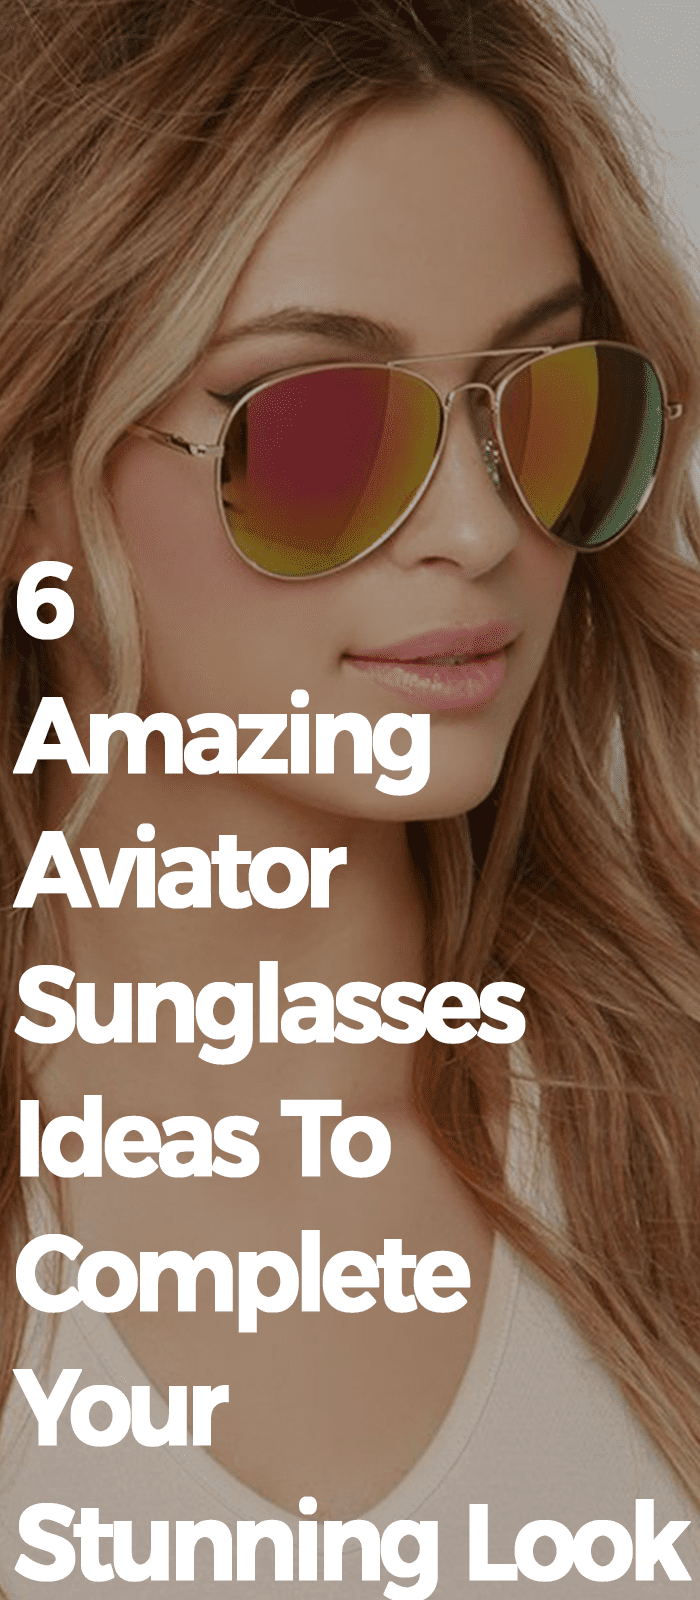 Amazing Aviator Sunglasses Ideas To Complete Your Stunning Look